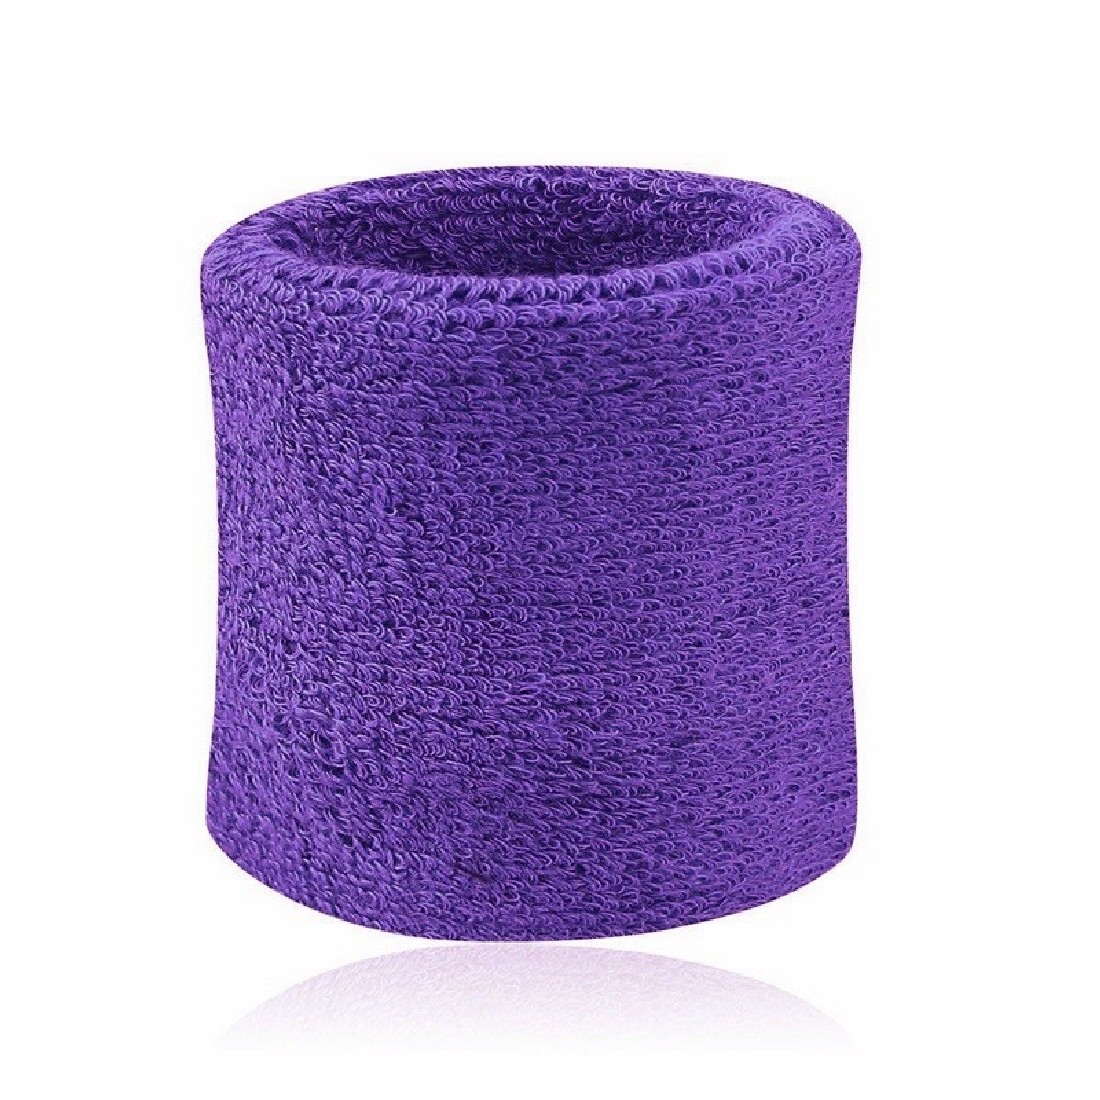 Men & Women Sports Sweatband Tennis Squash Badminton Terry Cloth Wrist Sweat Bands Basketball Gym Wristband Wrist Wraps